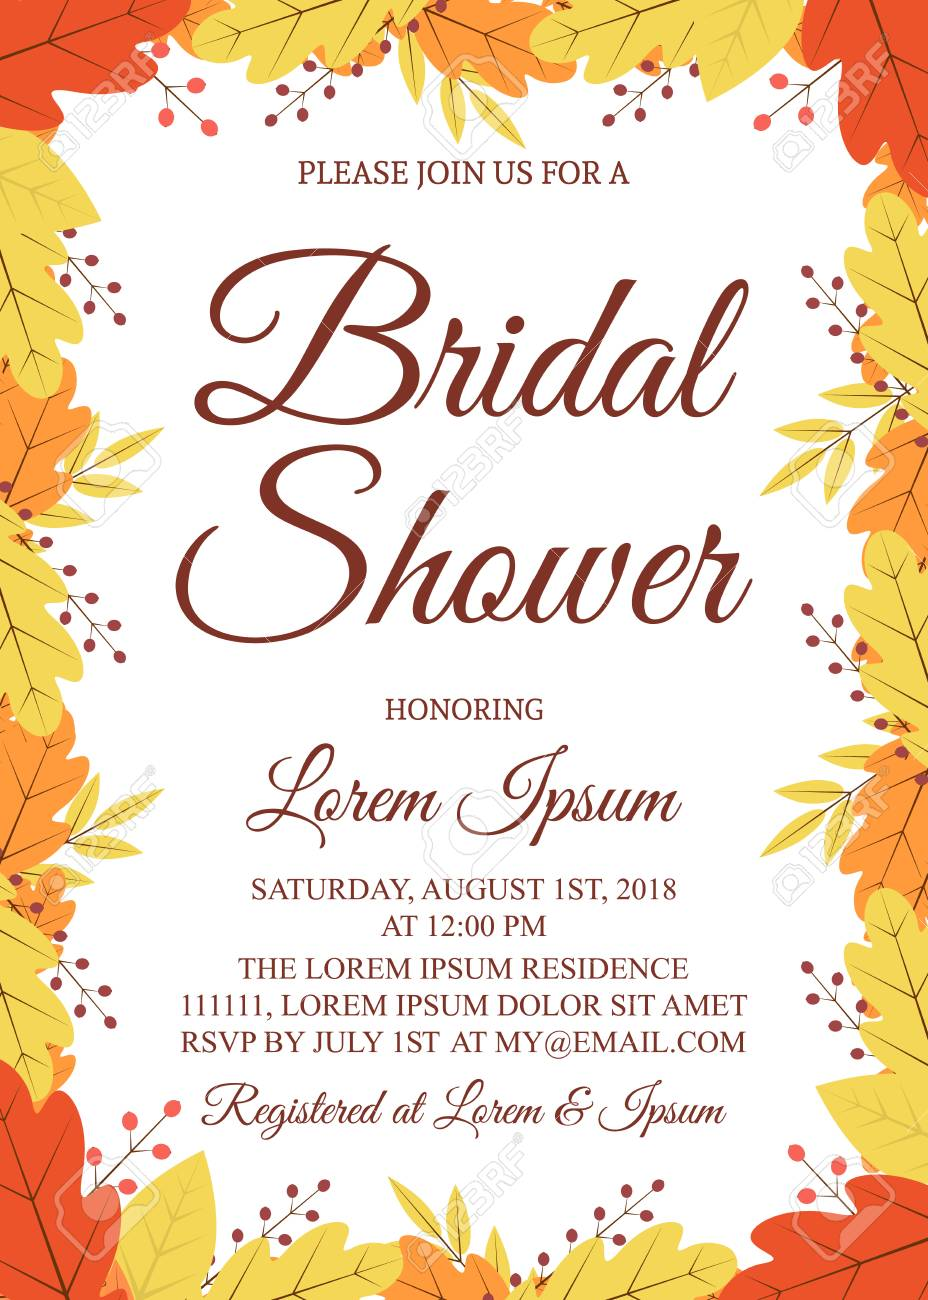 38a4a5a5be98 Autumn bridal shower invitation card. Border with colorful leaves and  berries. Fall theme bridal